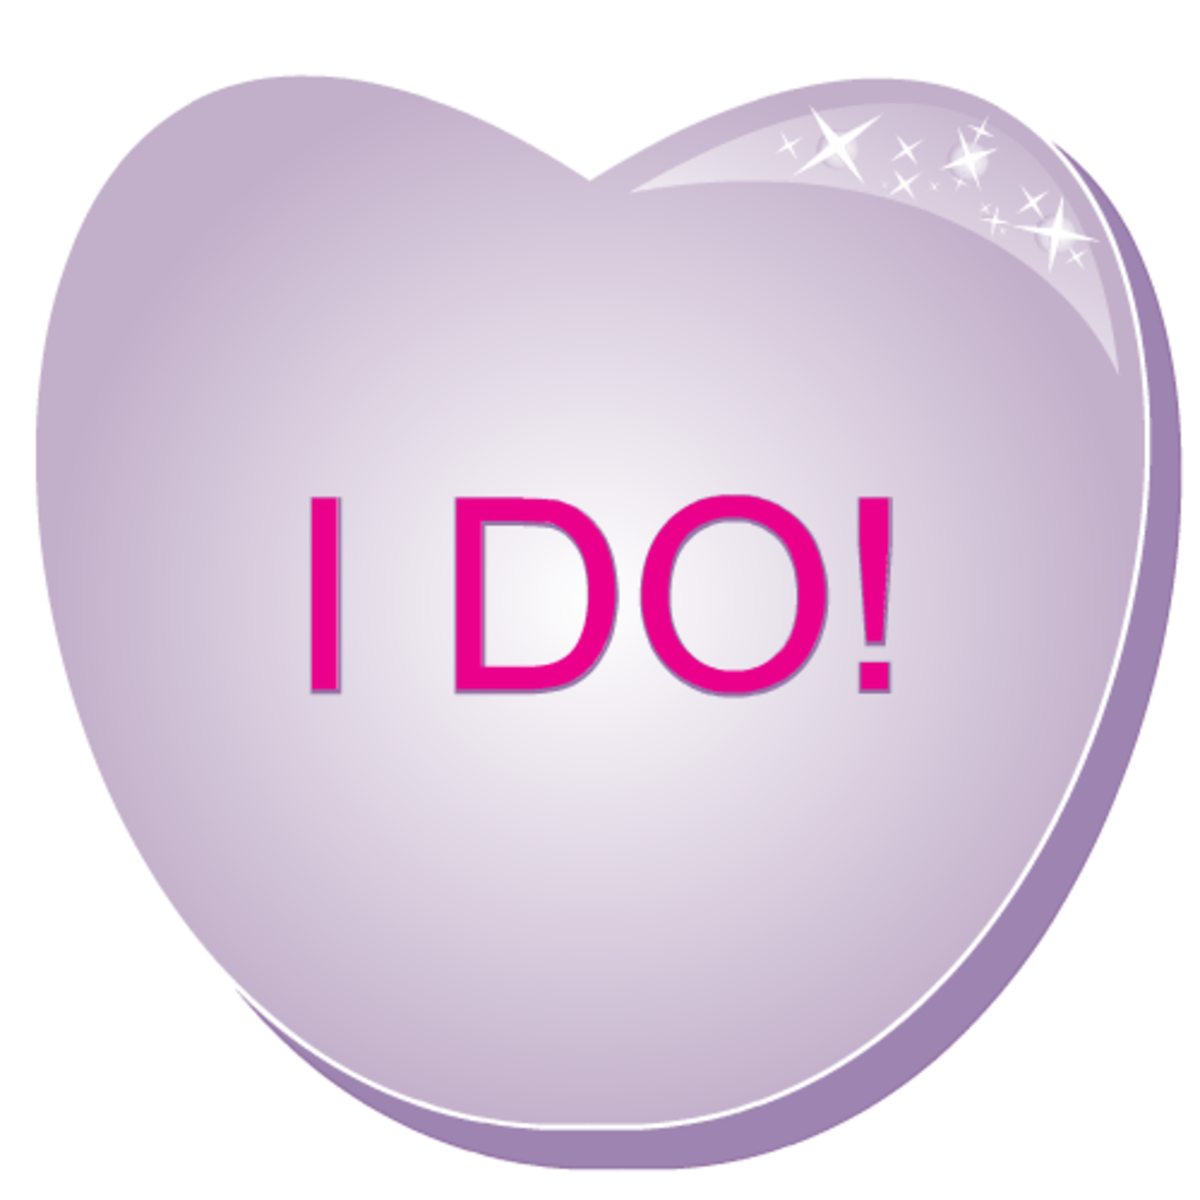 Free valentine clipart: I Do! purple candy heart